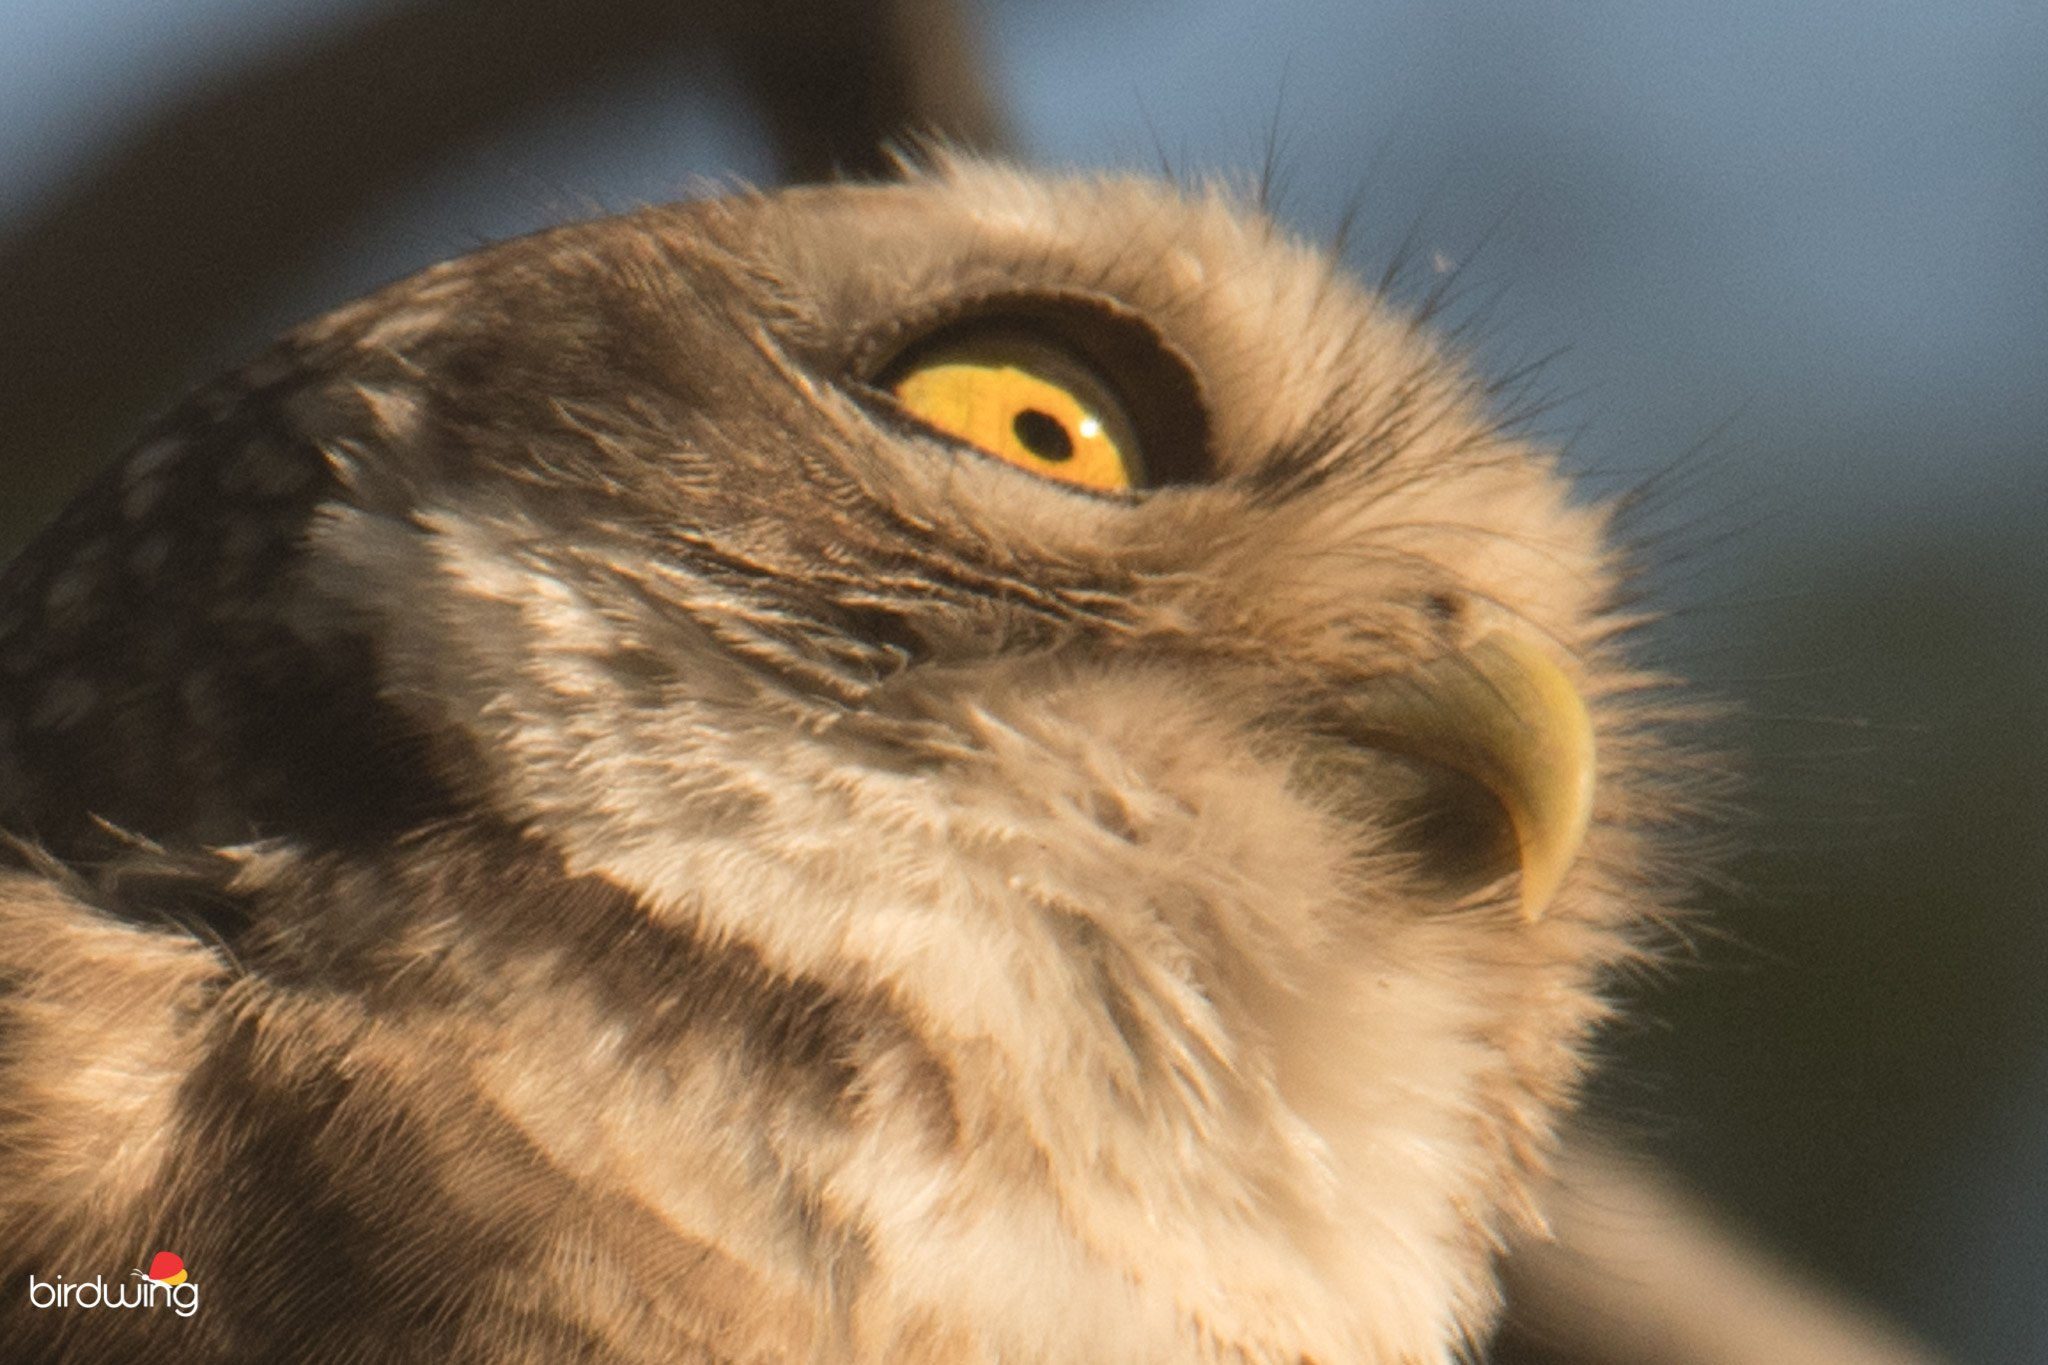 spotted-owlet-cropped-image